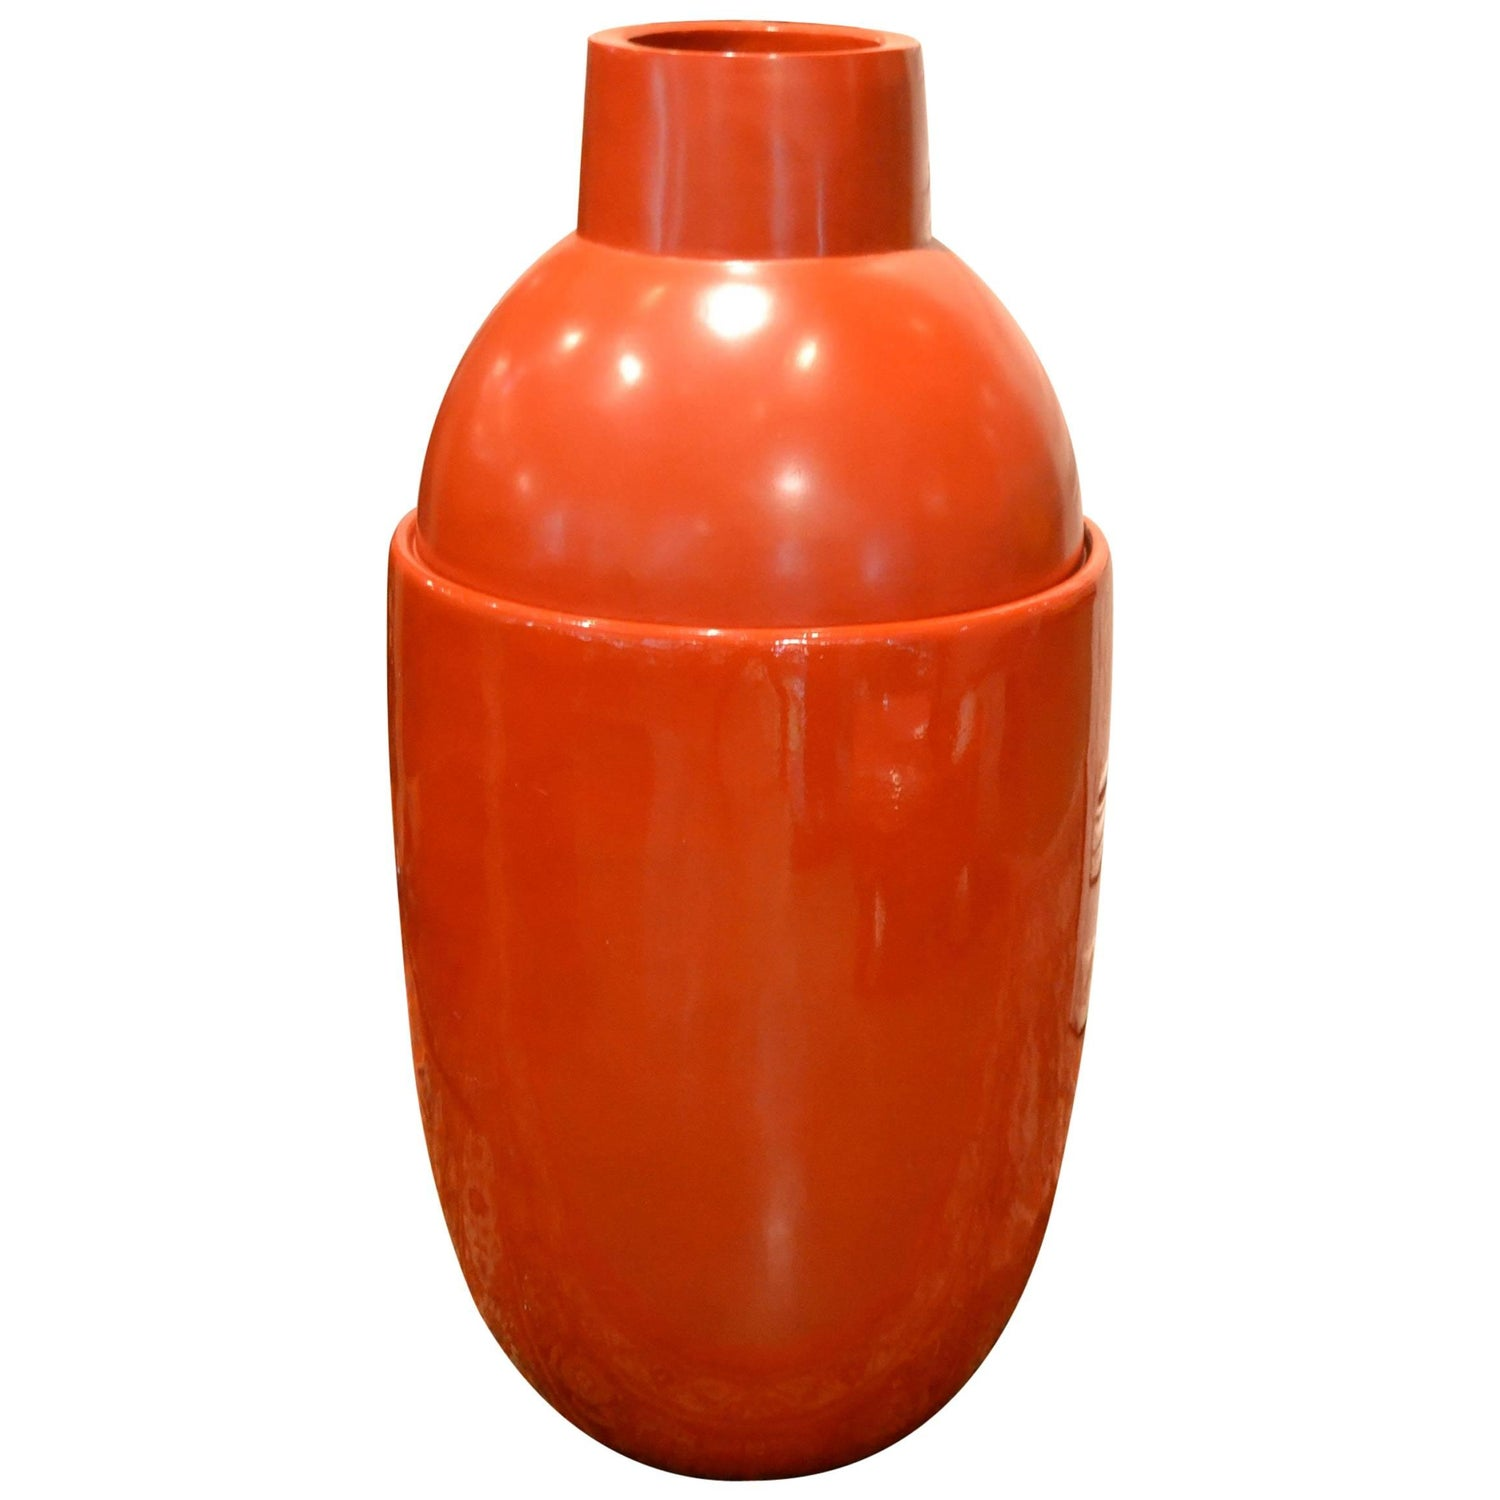 Dutch vases and vessels 196 for sale at 1stdibs large modern red fiberglass floor vase by edward van vliet reviewsmspy